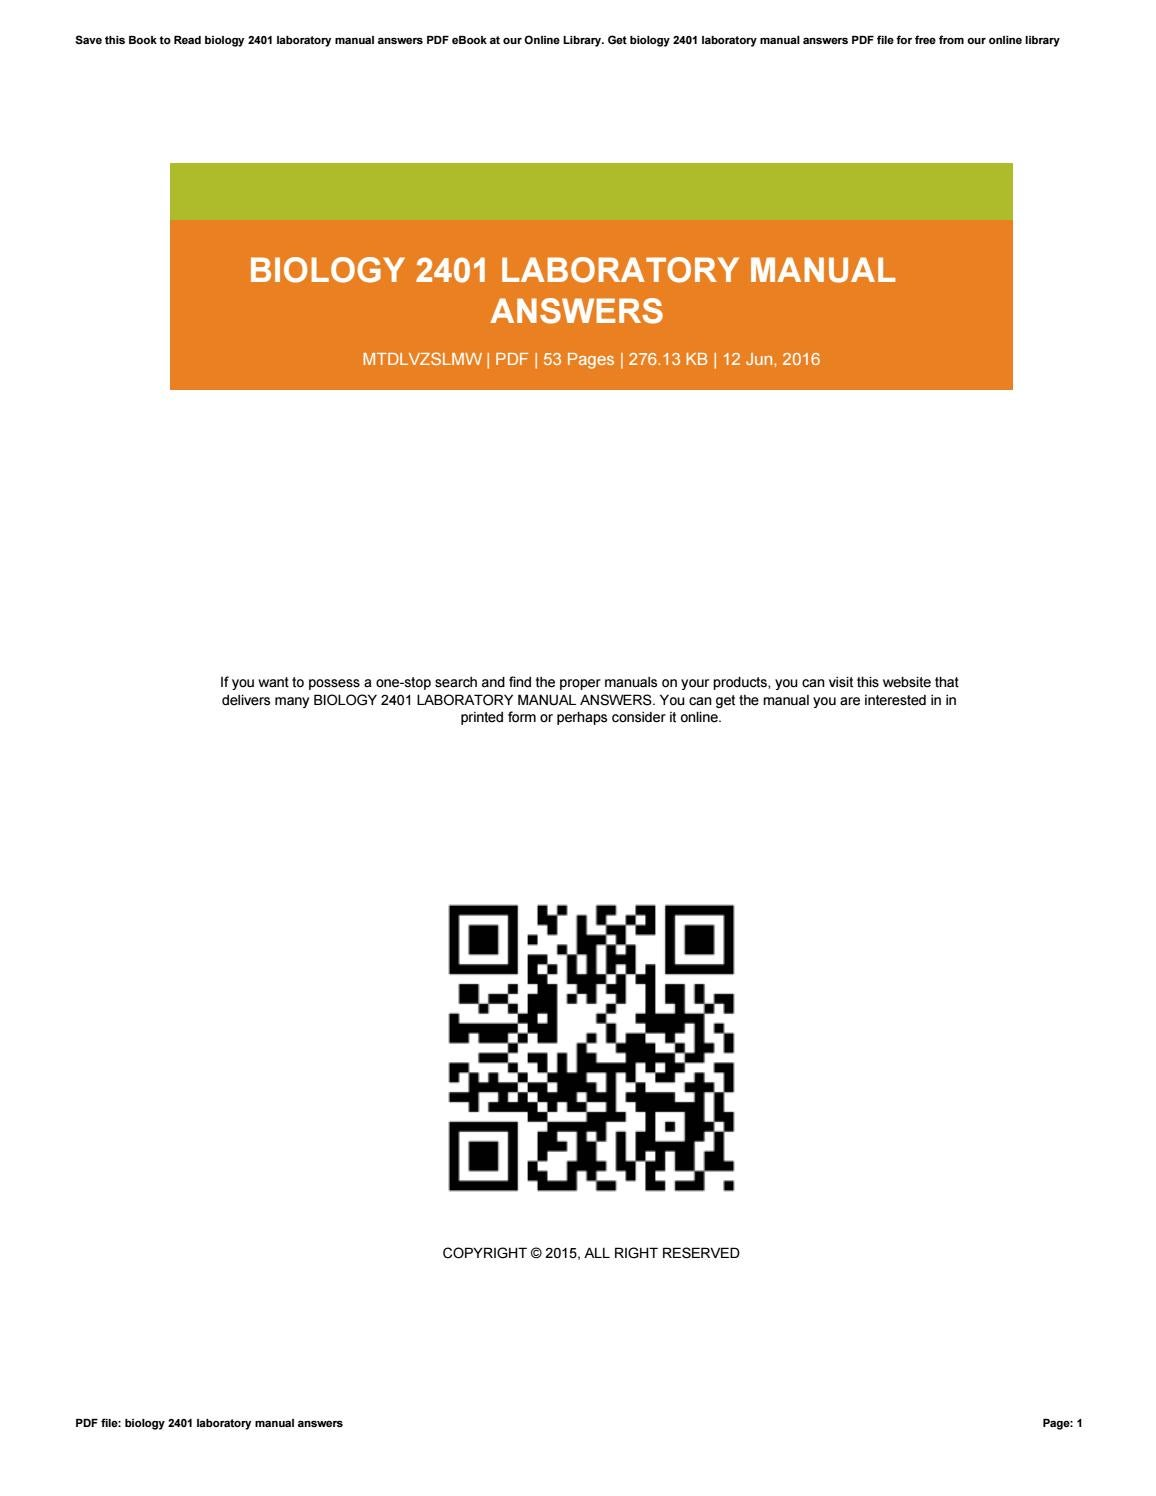 Biology 2401 Laboratory Manual Answers - User Guide Manual That Easy ...